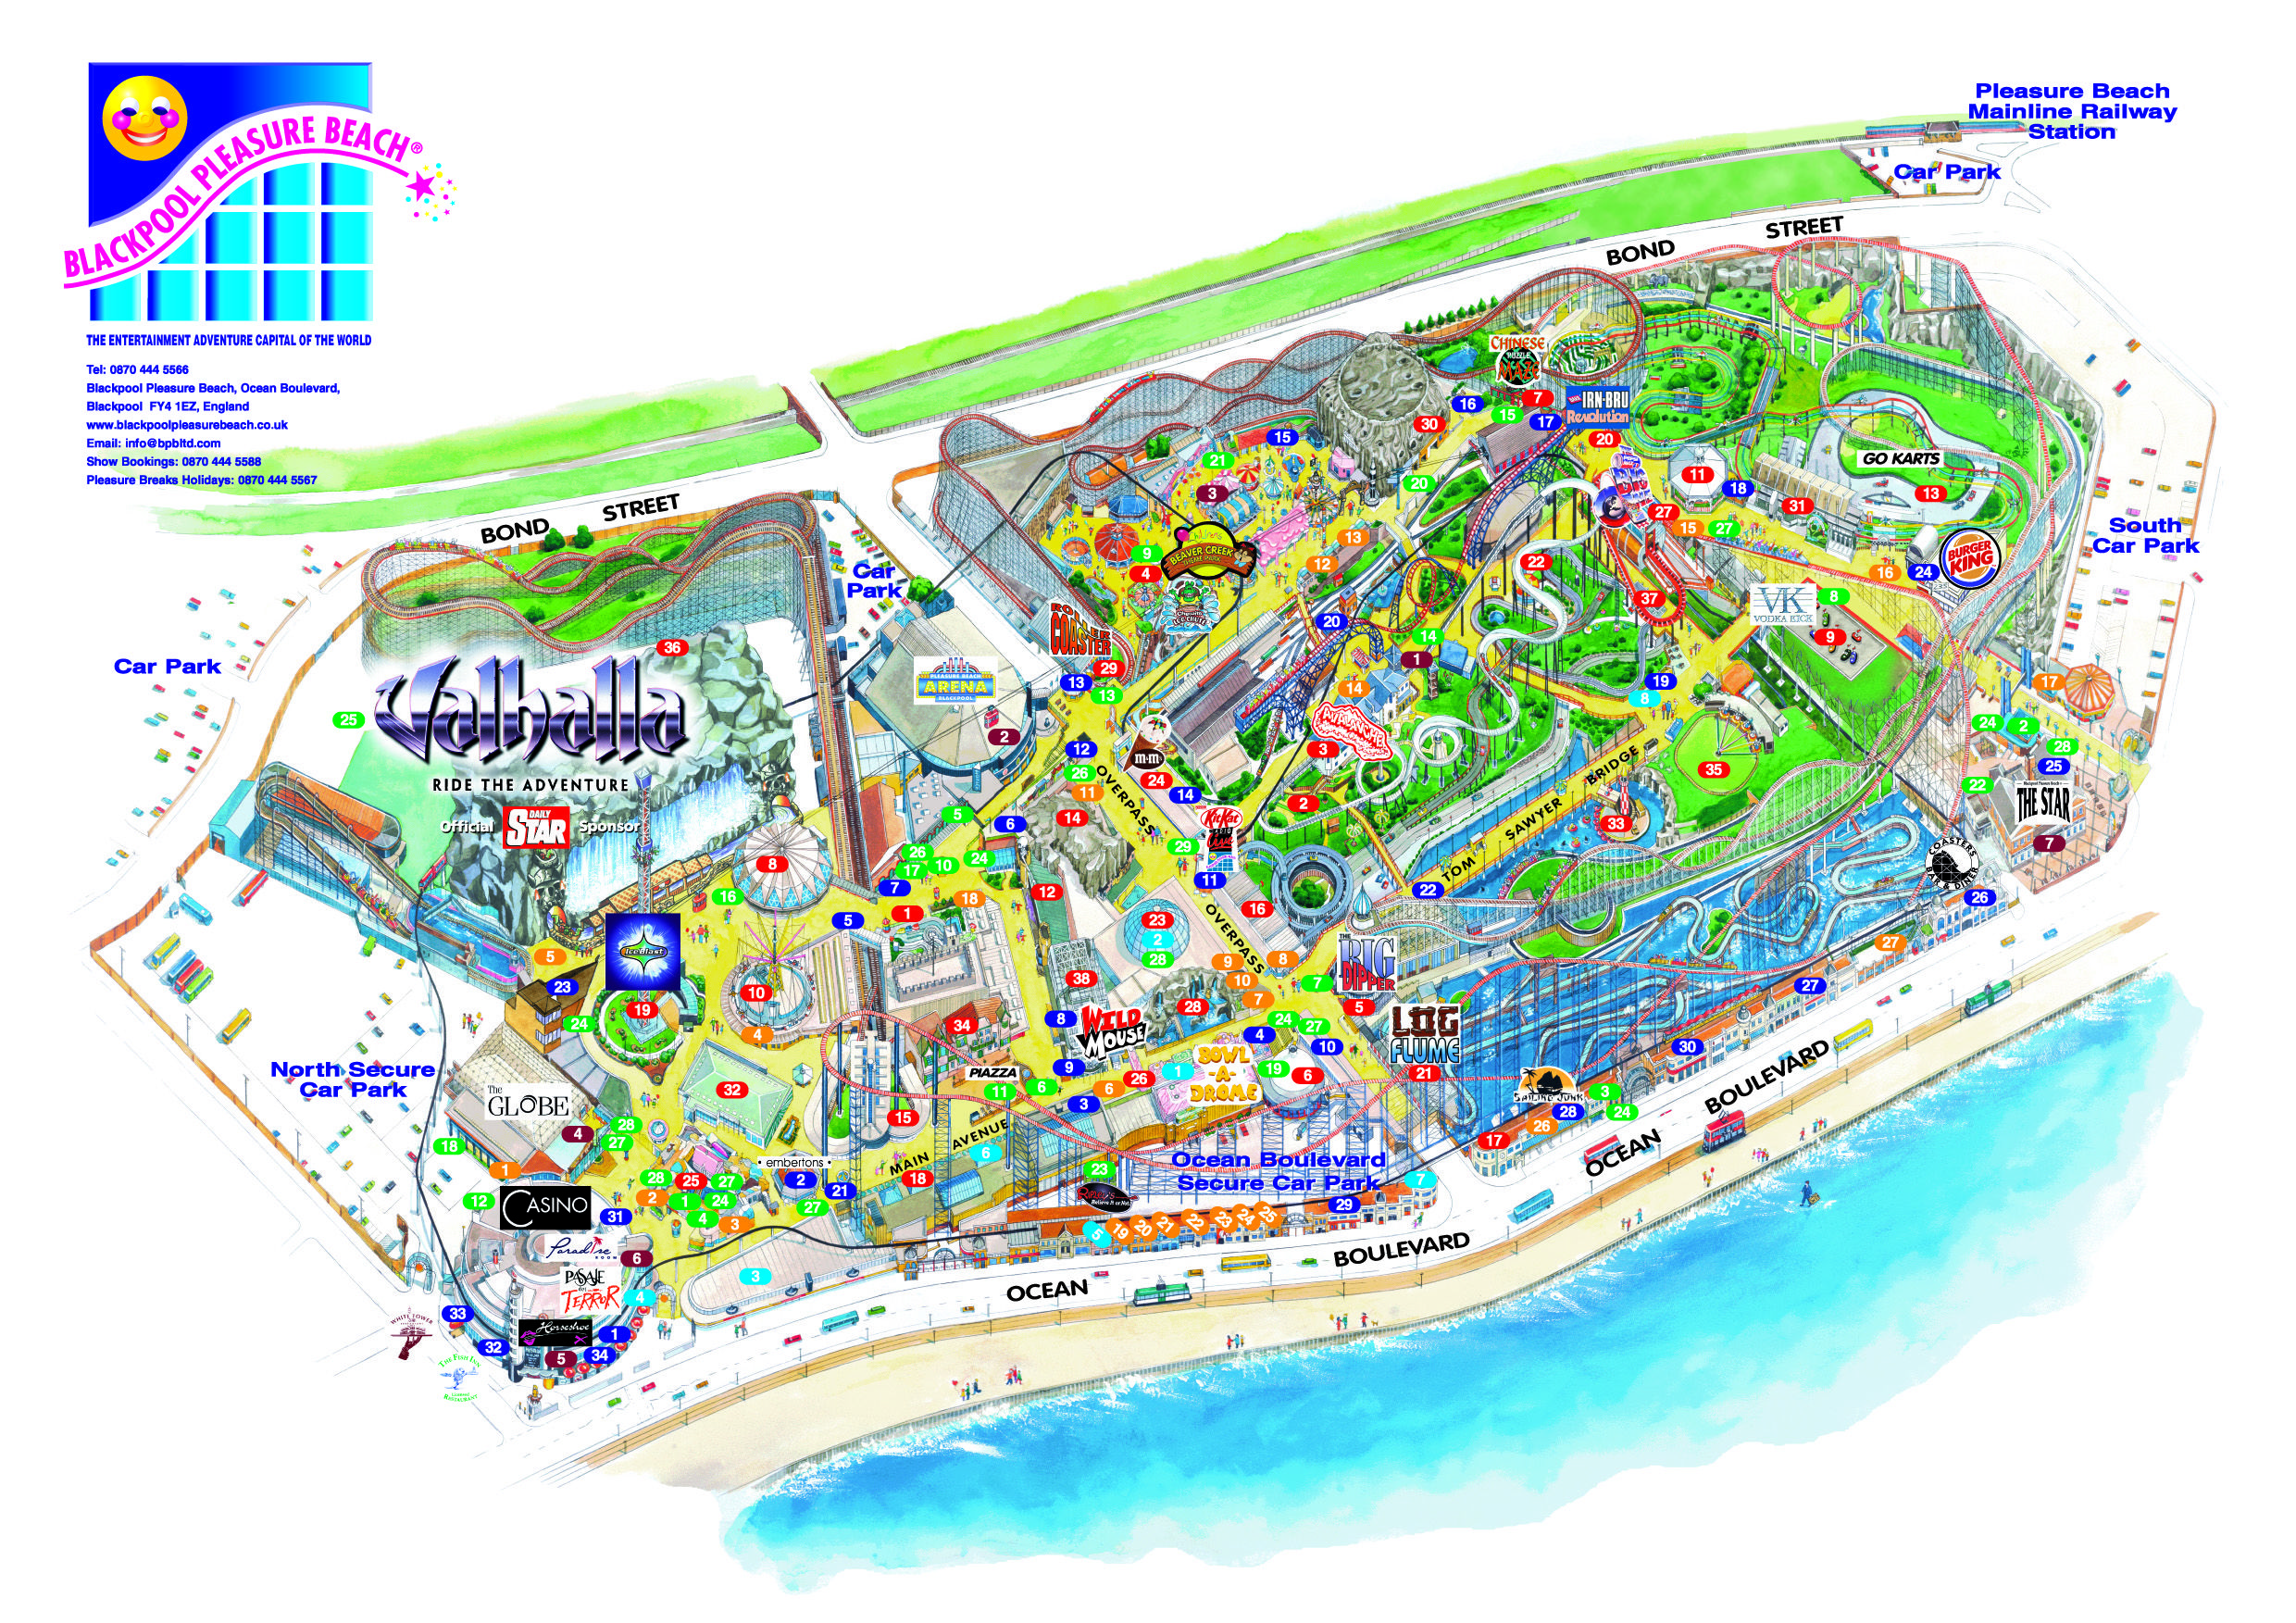 Blackpool Pleasure Beach Map Blackpool Pleasure Beach 3D map from Fitzpatrick Woolmer | 3D Maps